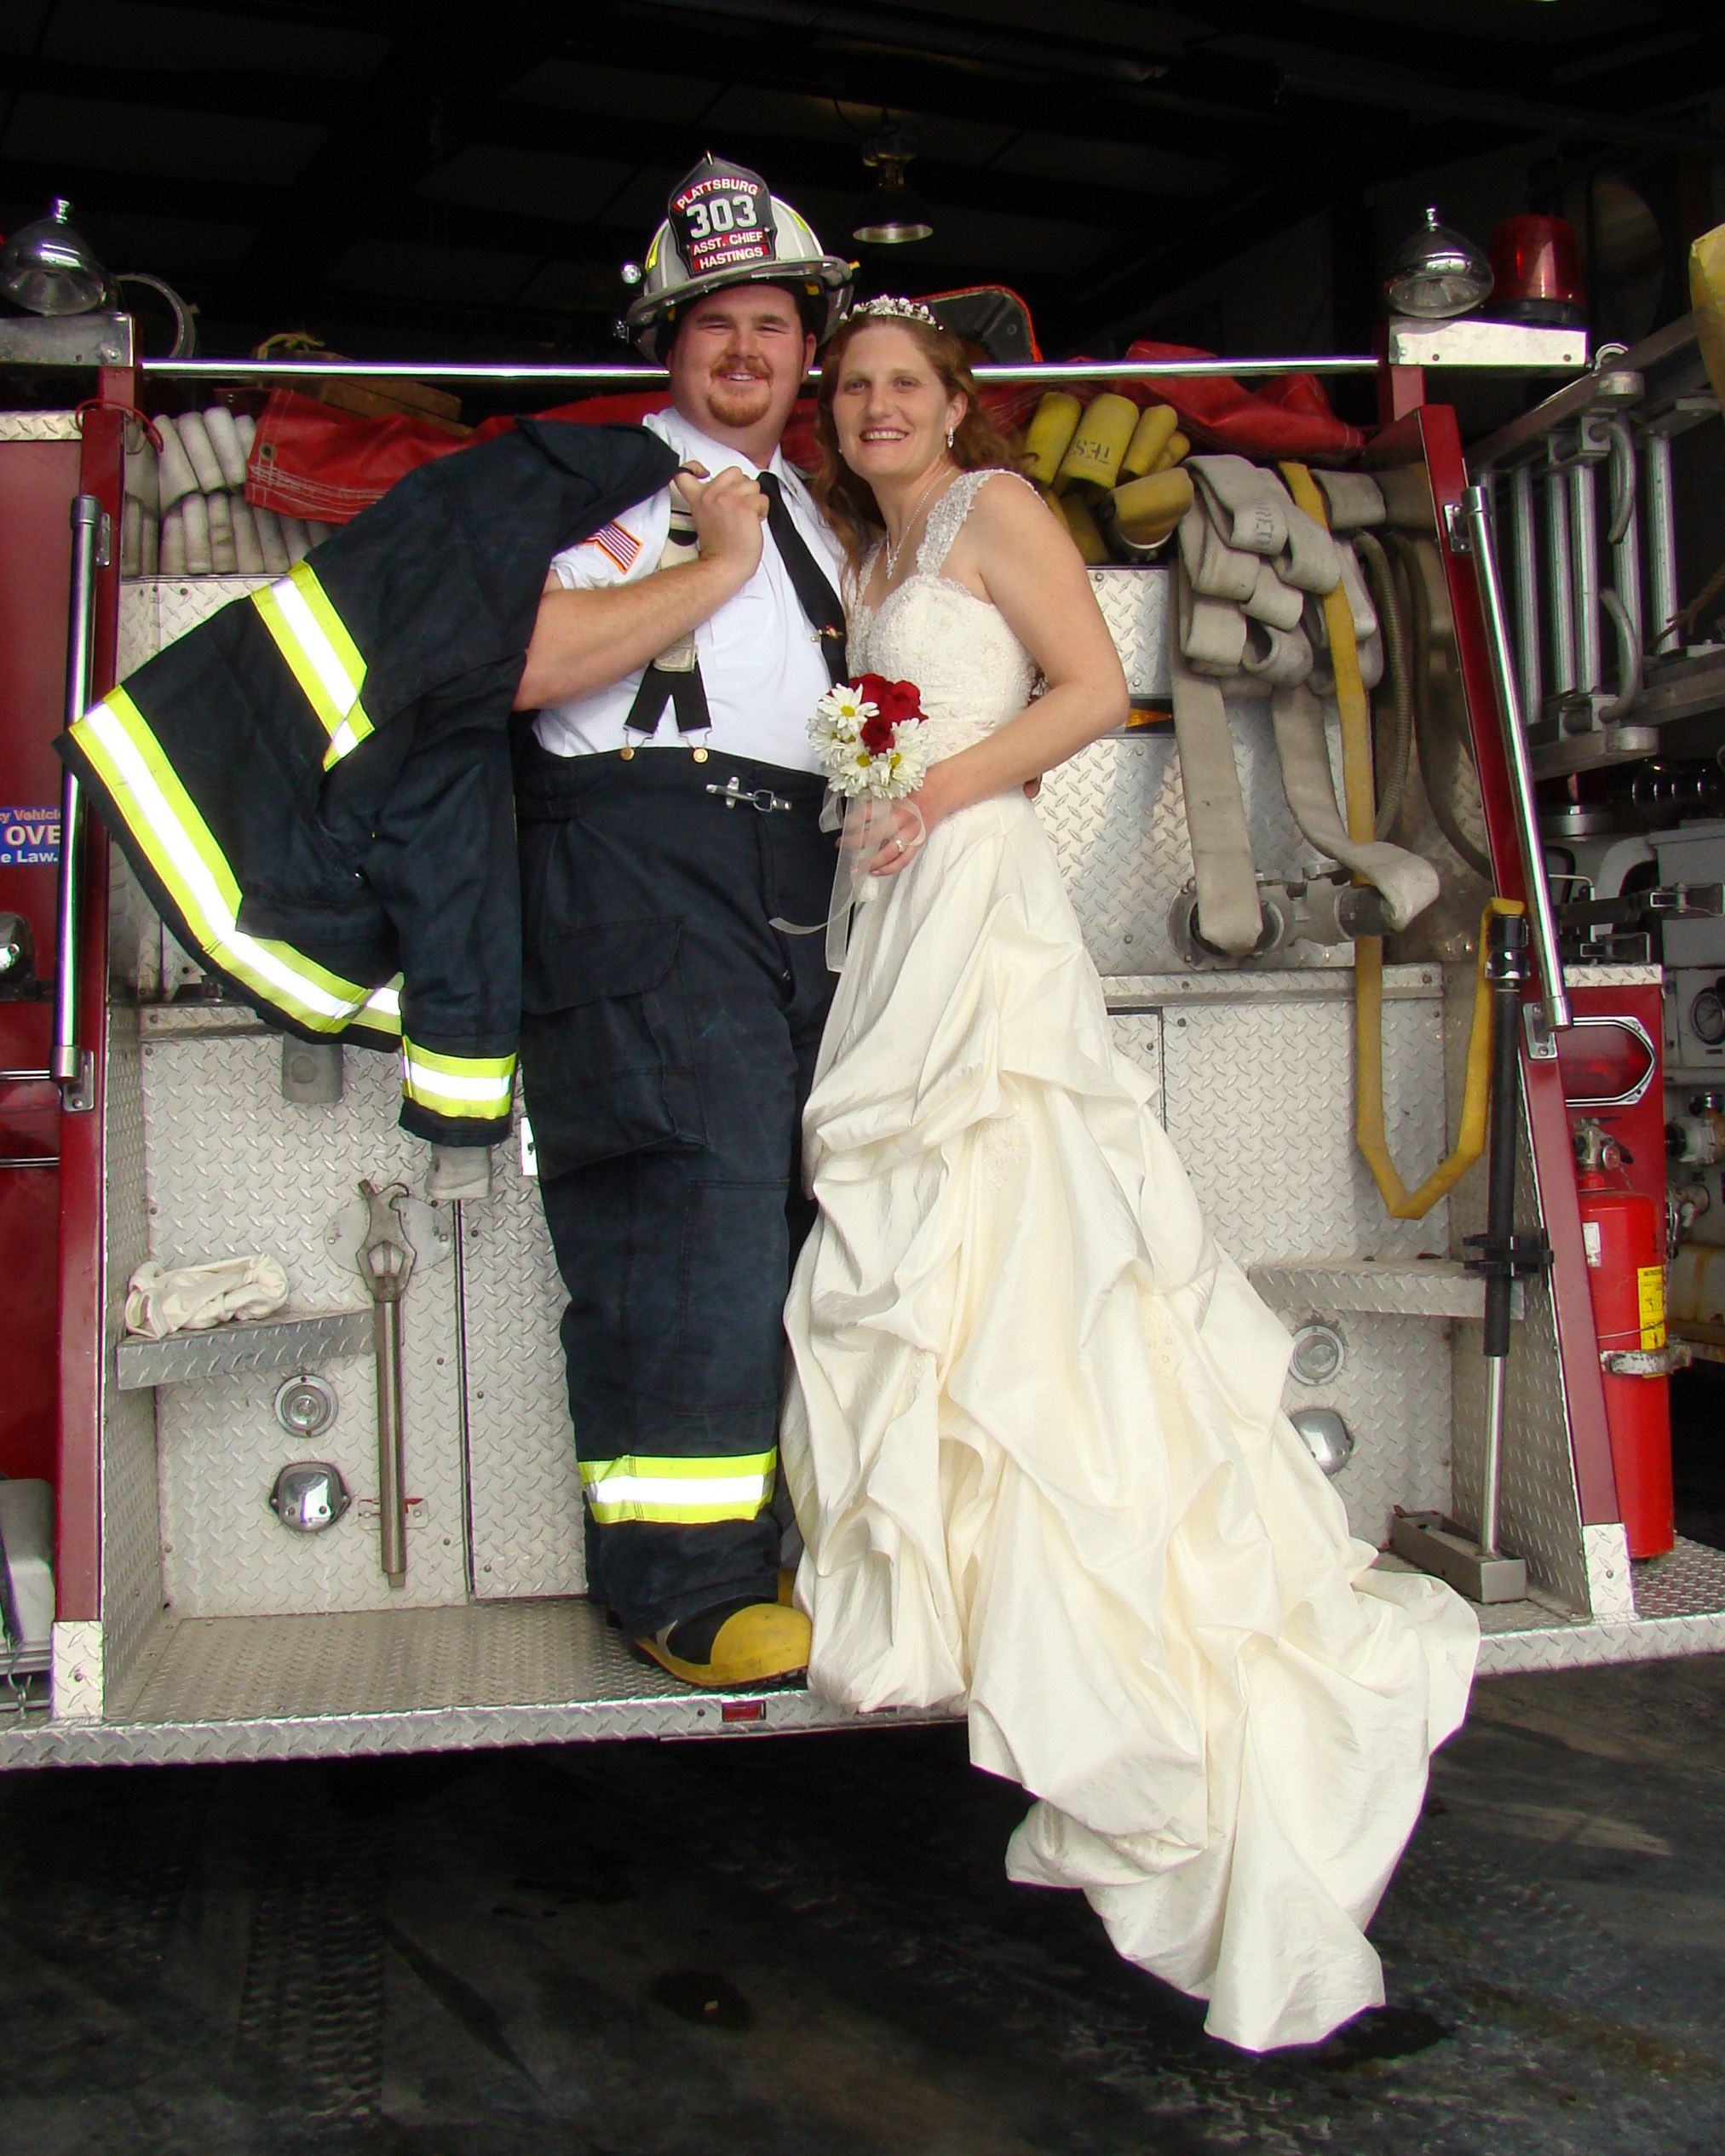 Firefighter Wedding Themes Ideas: Firefighter Wedding Hastings